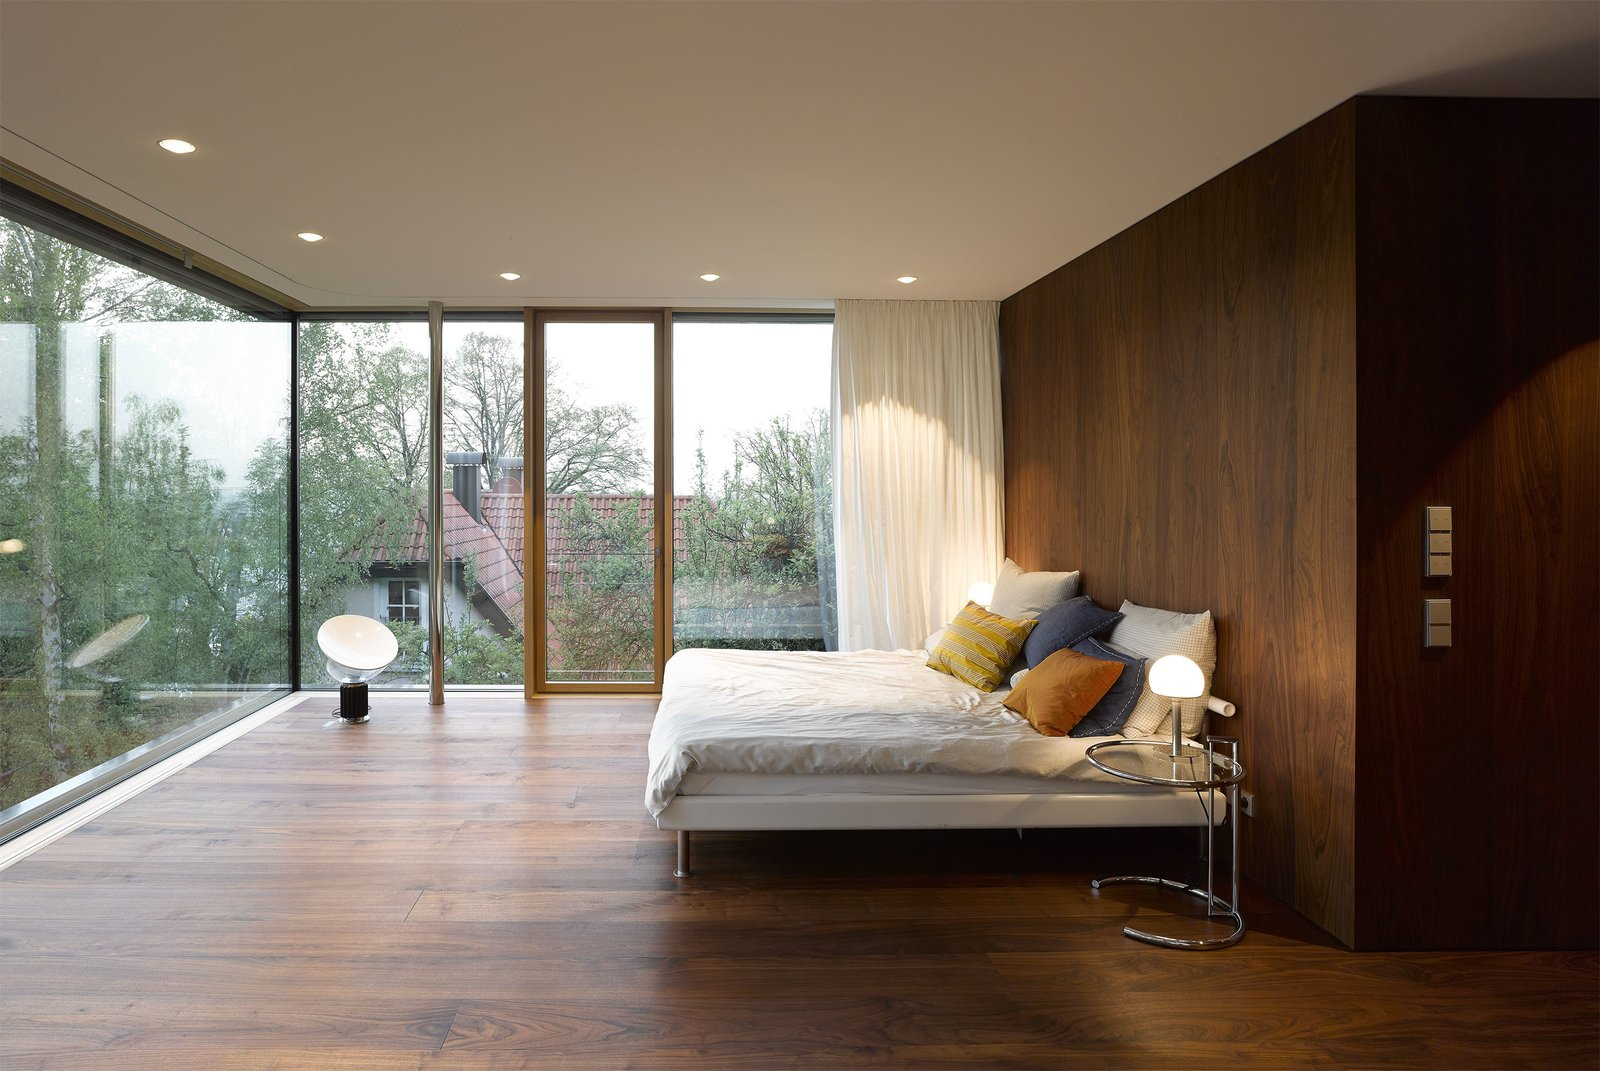 Bedroom, Night Stands, Table Lighting, Floor Lighting, Bed, Dark Hardwood Floor, Lamps, and Recessed Lighting Light streams into the bedroom through walls of floor-to-ceiling glass. The windows are triple-glazed, creating a tight, eco-friendly seal.  Bedroom from An Uninspired Home in Germany Gets a Bright, Eco-Friendly Update